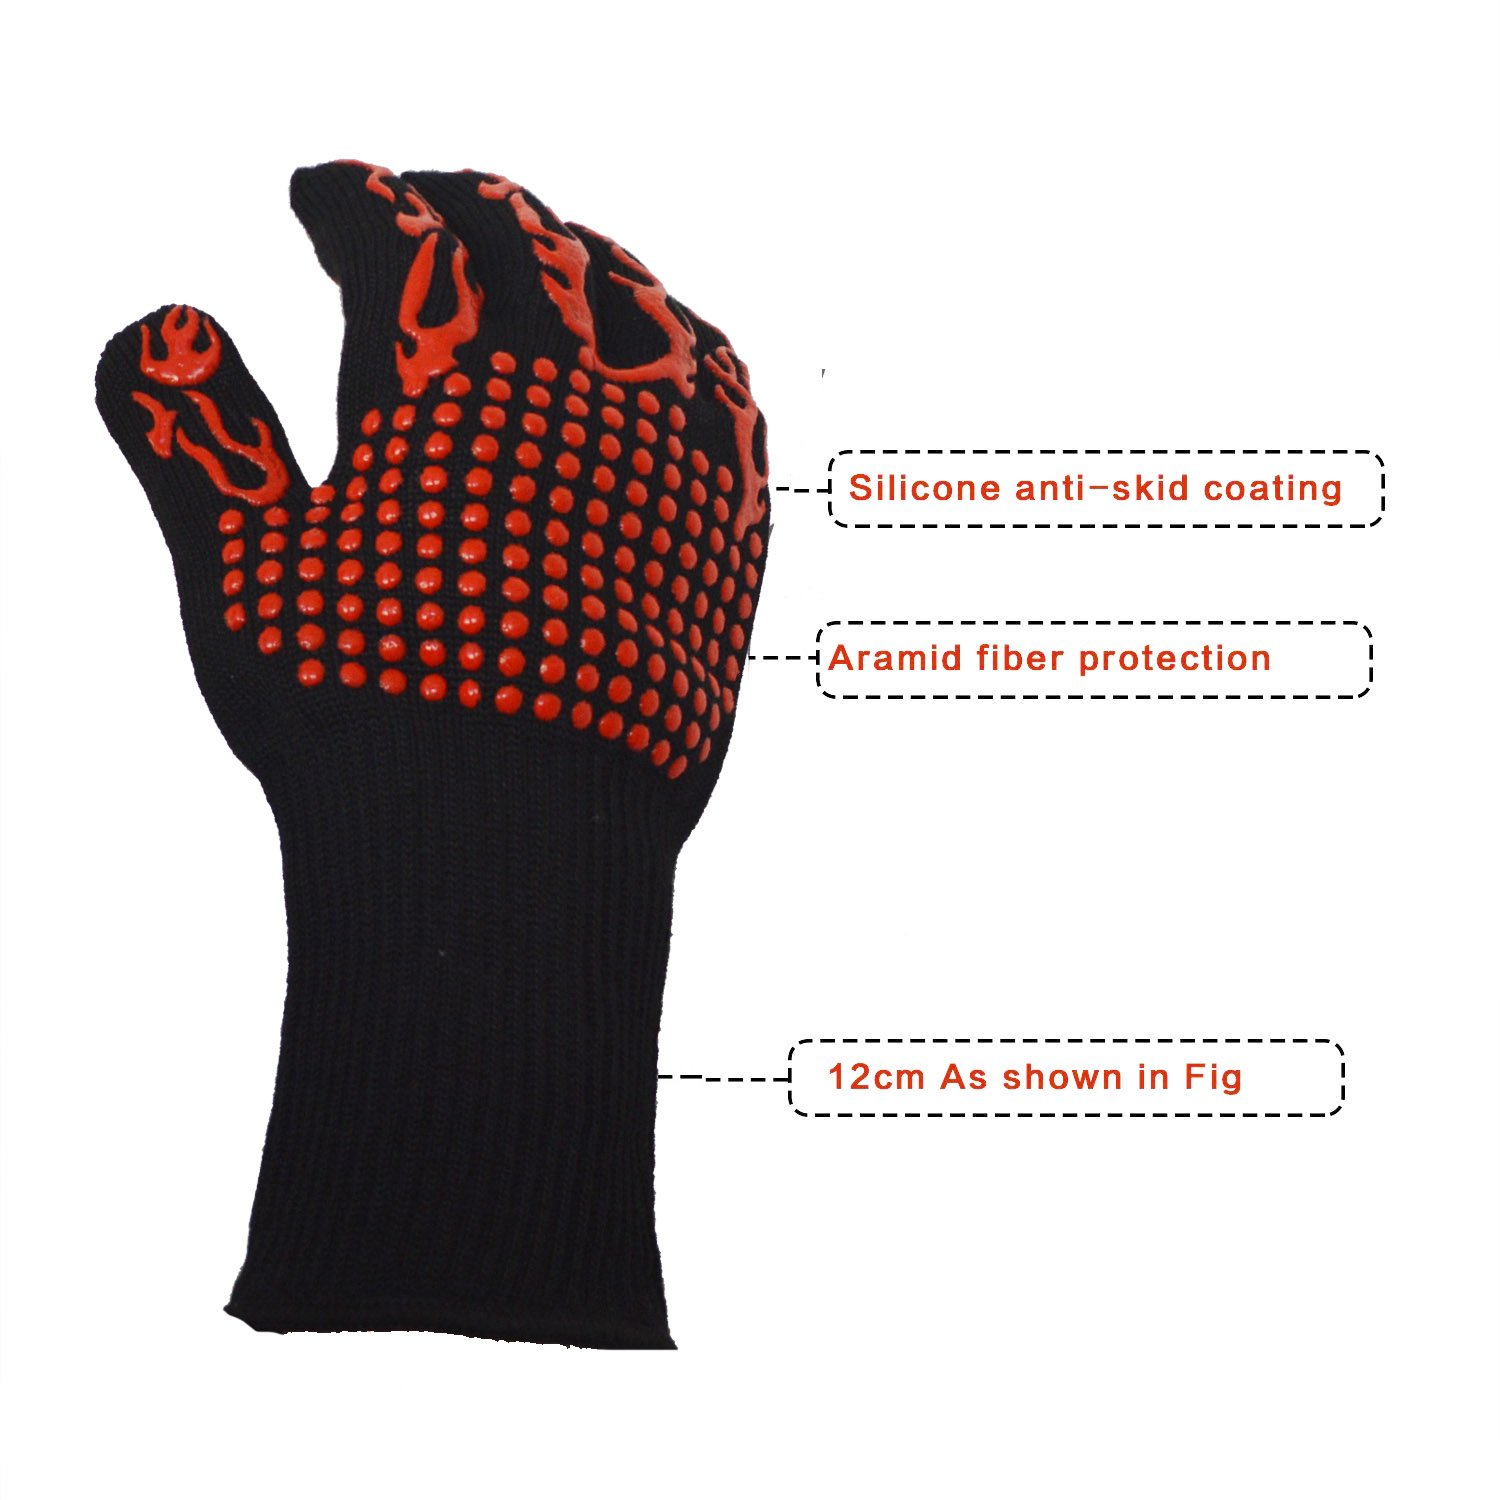 Extreme heat resistant protection, BBQ Gloves Oven Mitt,Hand Protection From Grilling,Kitchen, Fireplace, Grilling, Double Layers Silicone CoatingHeat And Flame Resistant Up To 932°F thick and durable